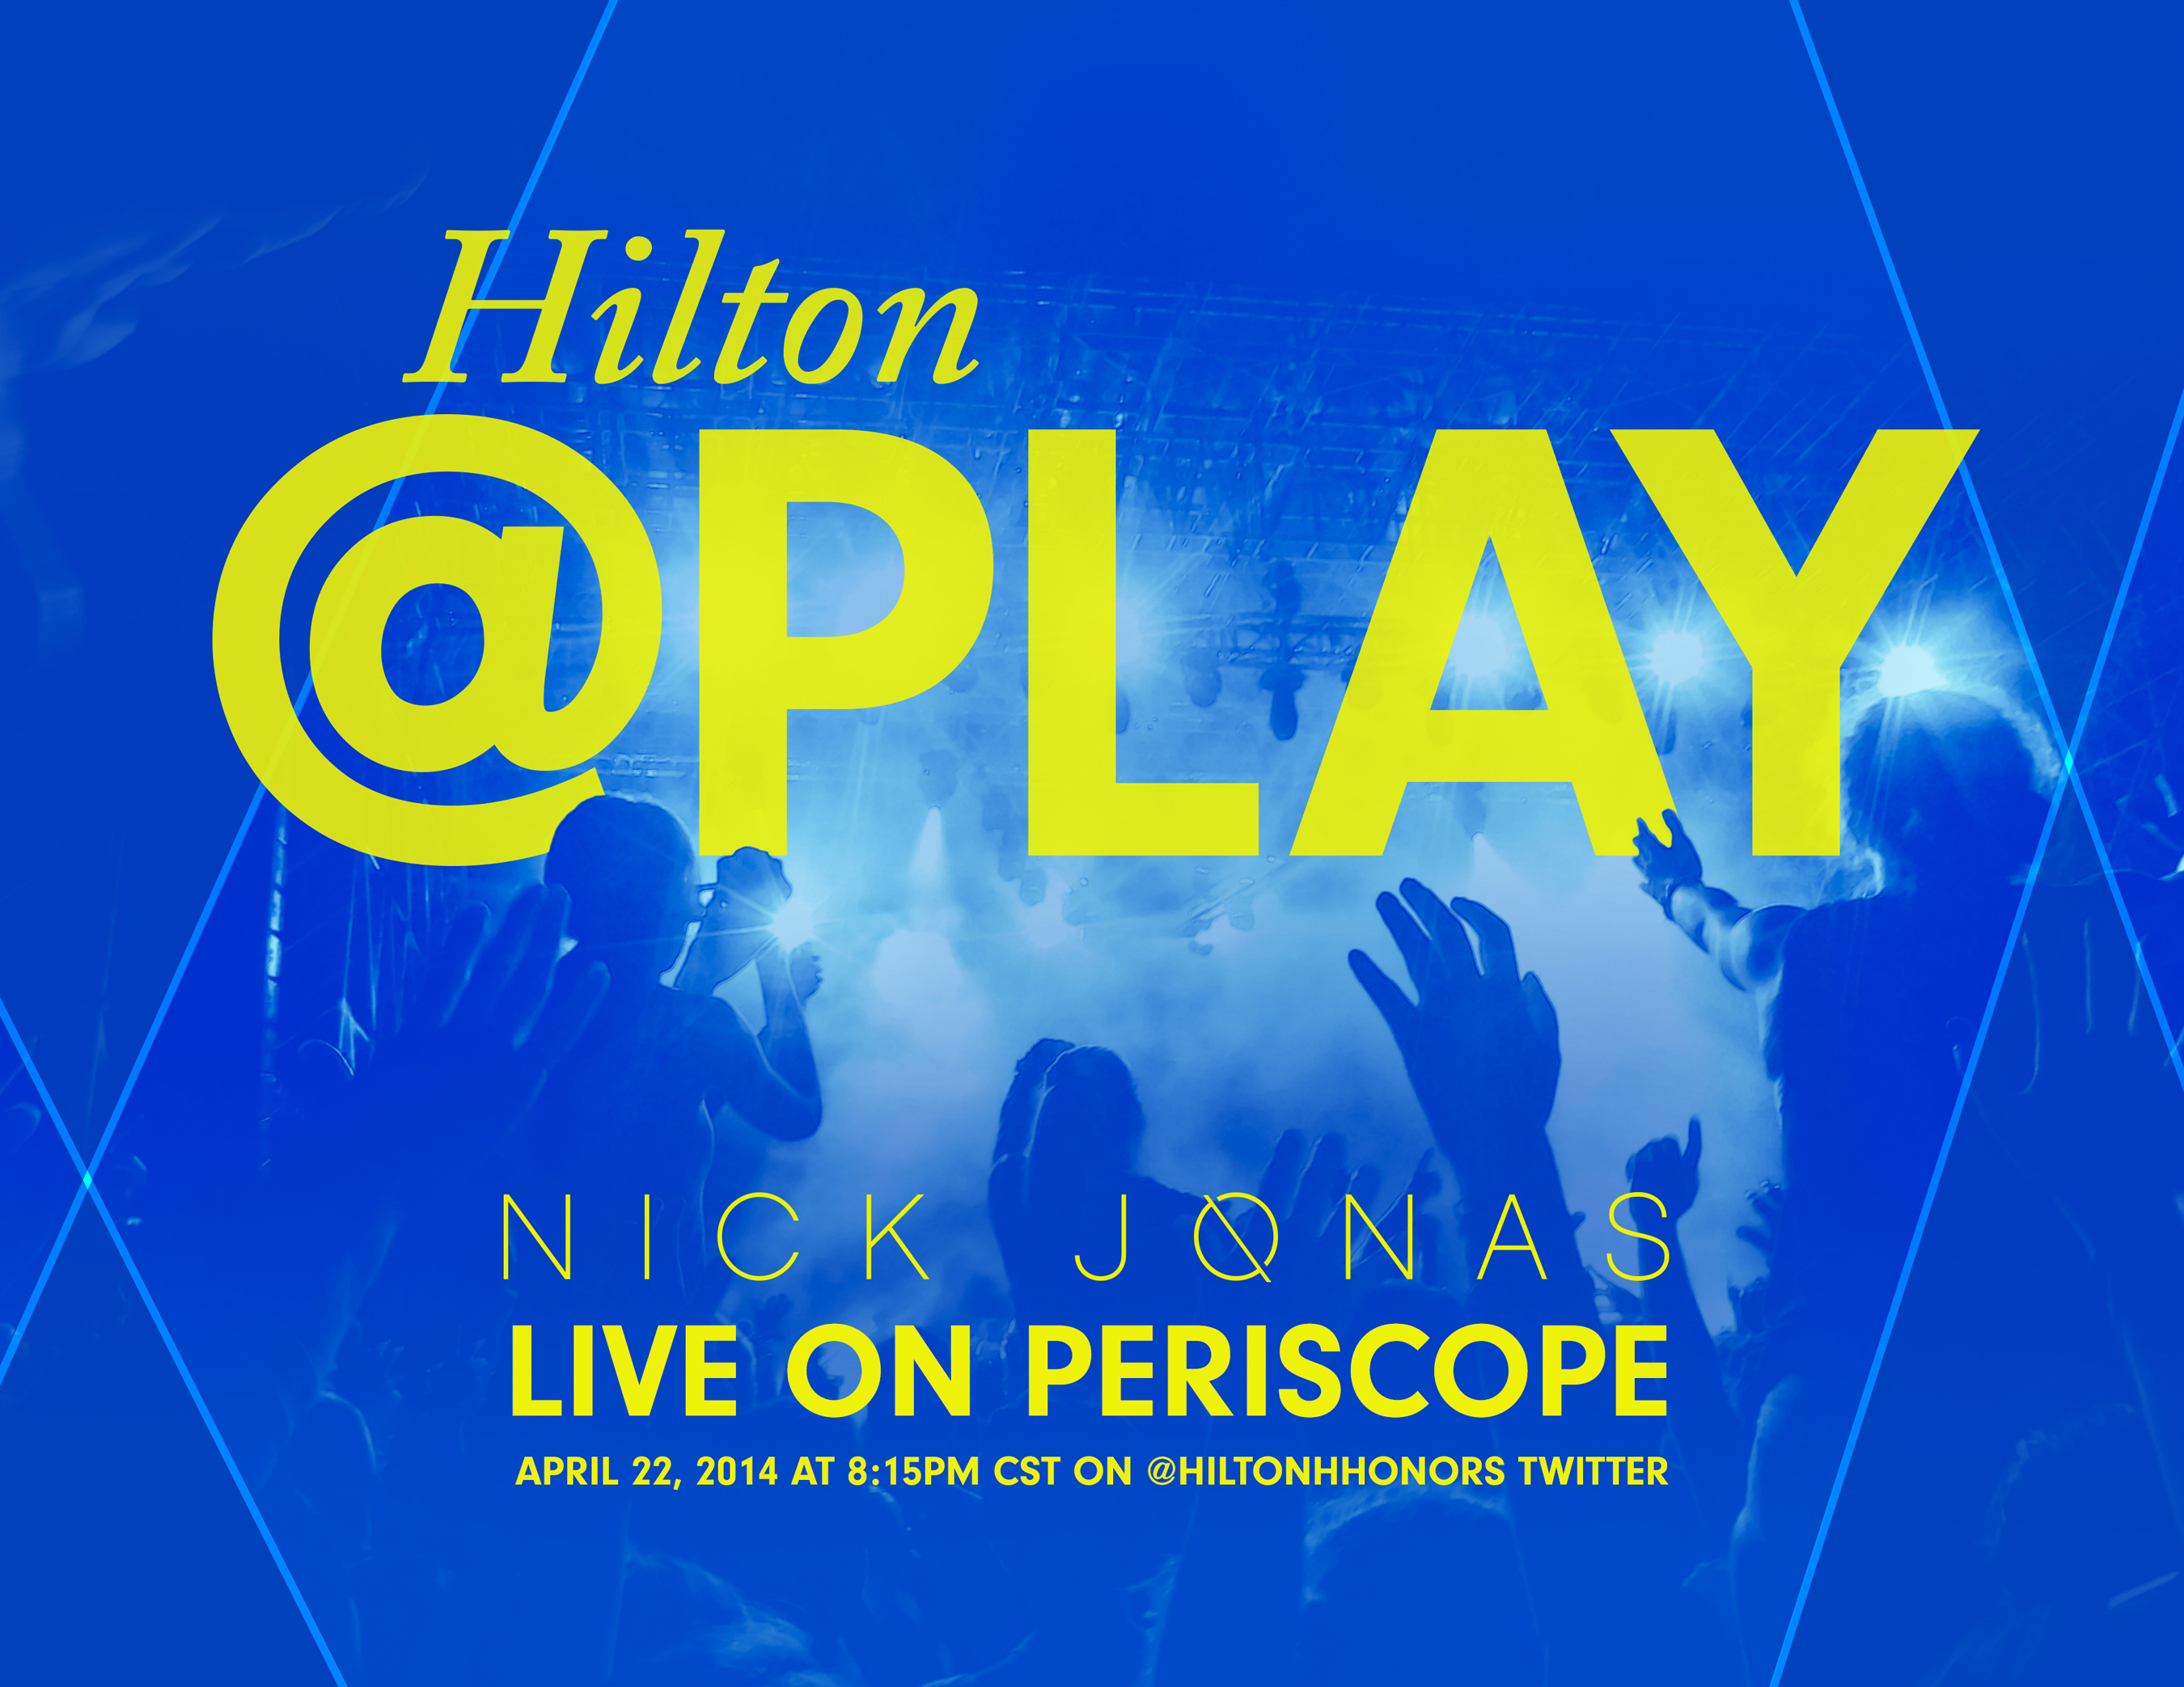 Hilton First to Stream Live Concert on Periscope, Featuring